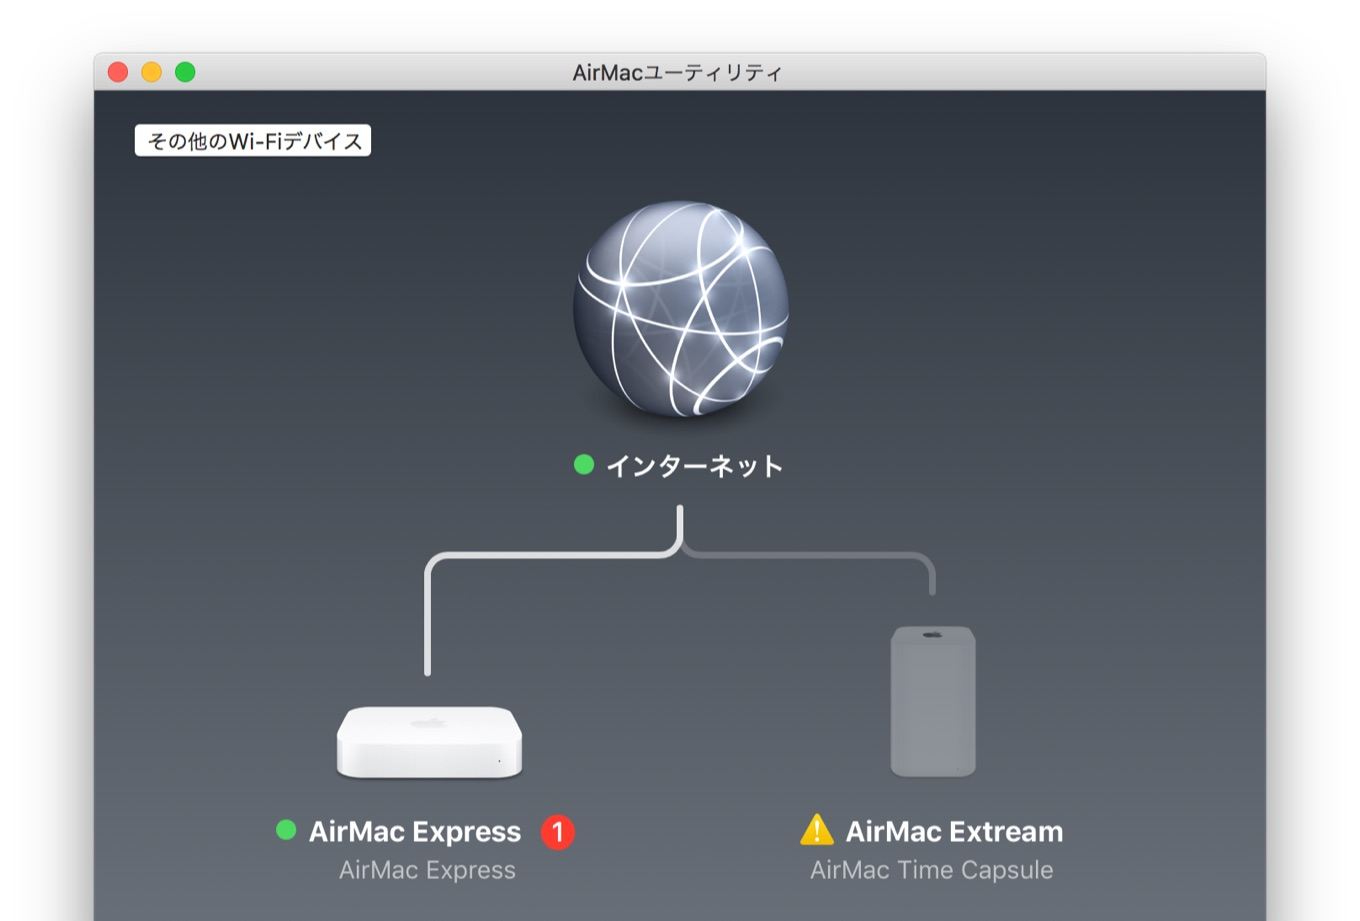 airmac time capsule ファームウェア アップデート